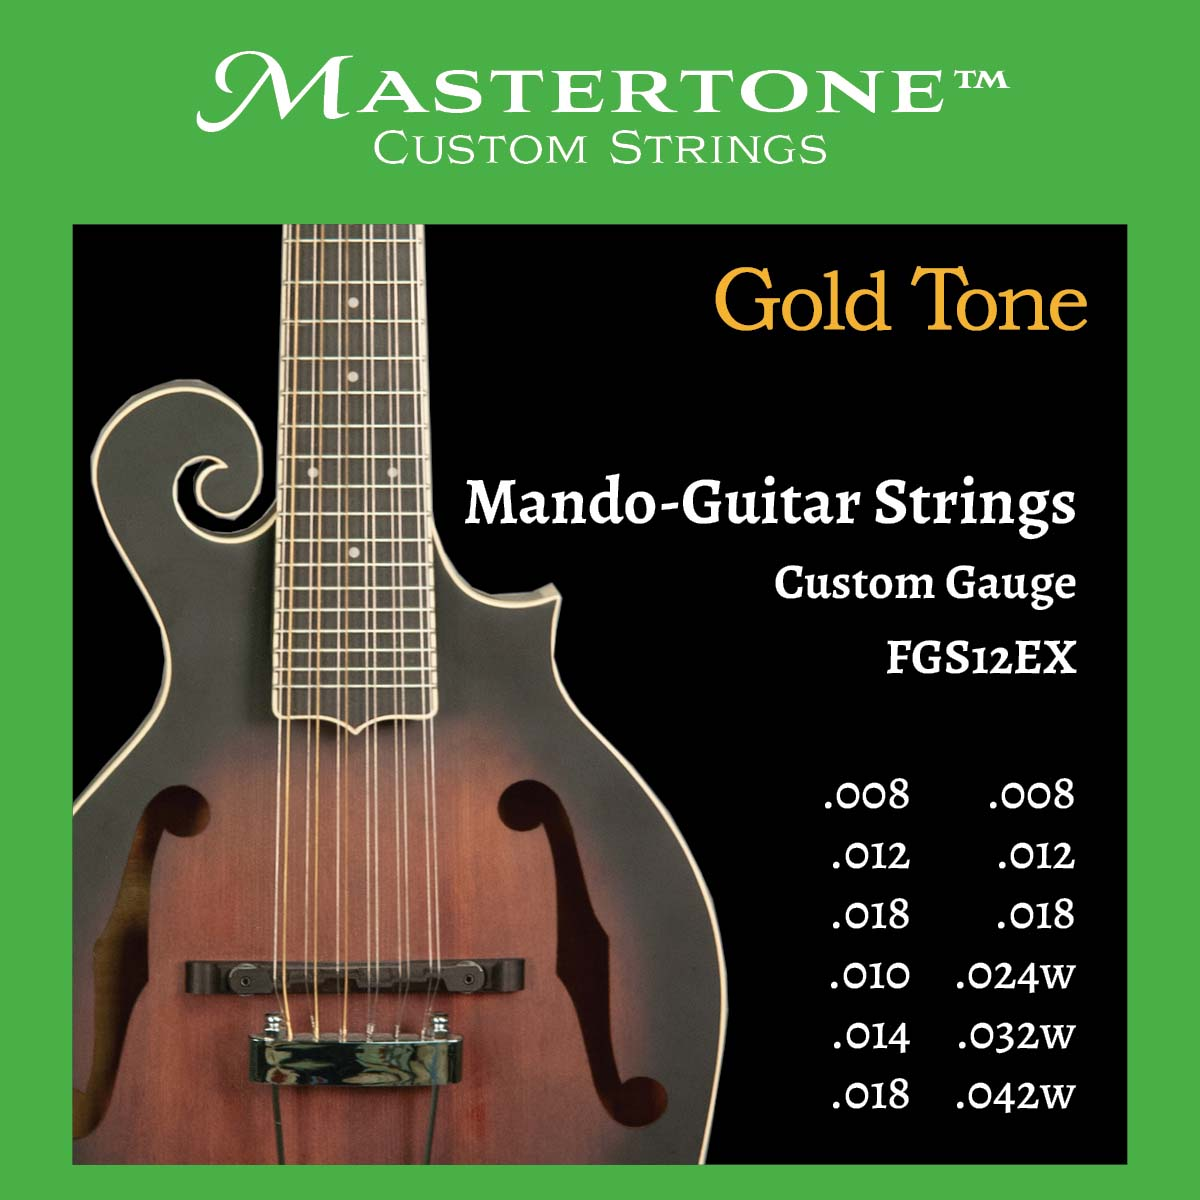 12-String Mando-Guitar Strings (Extra Light)